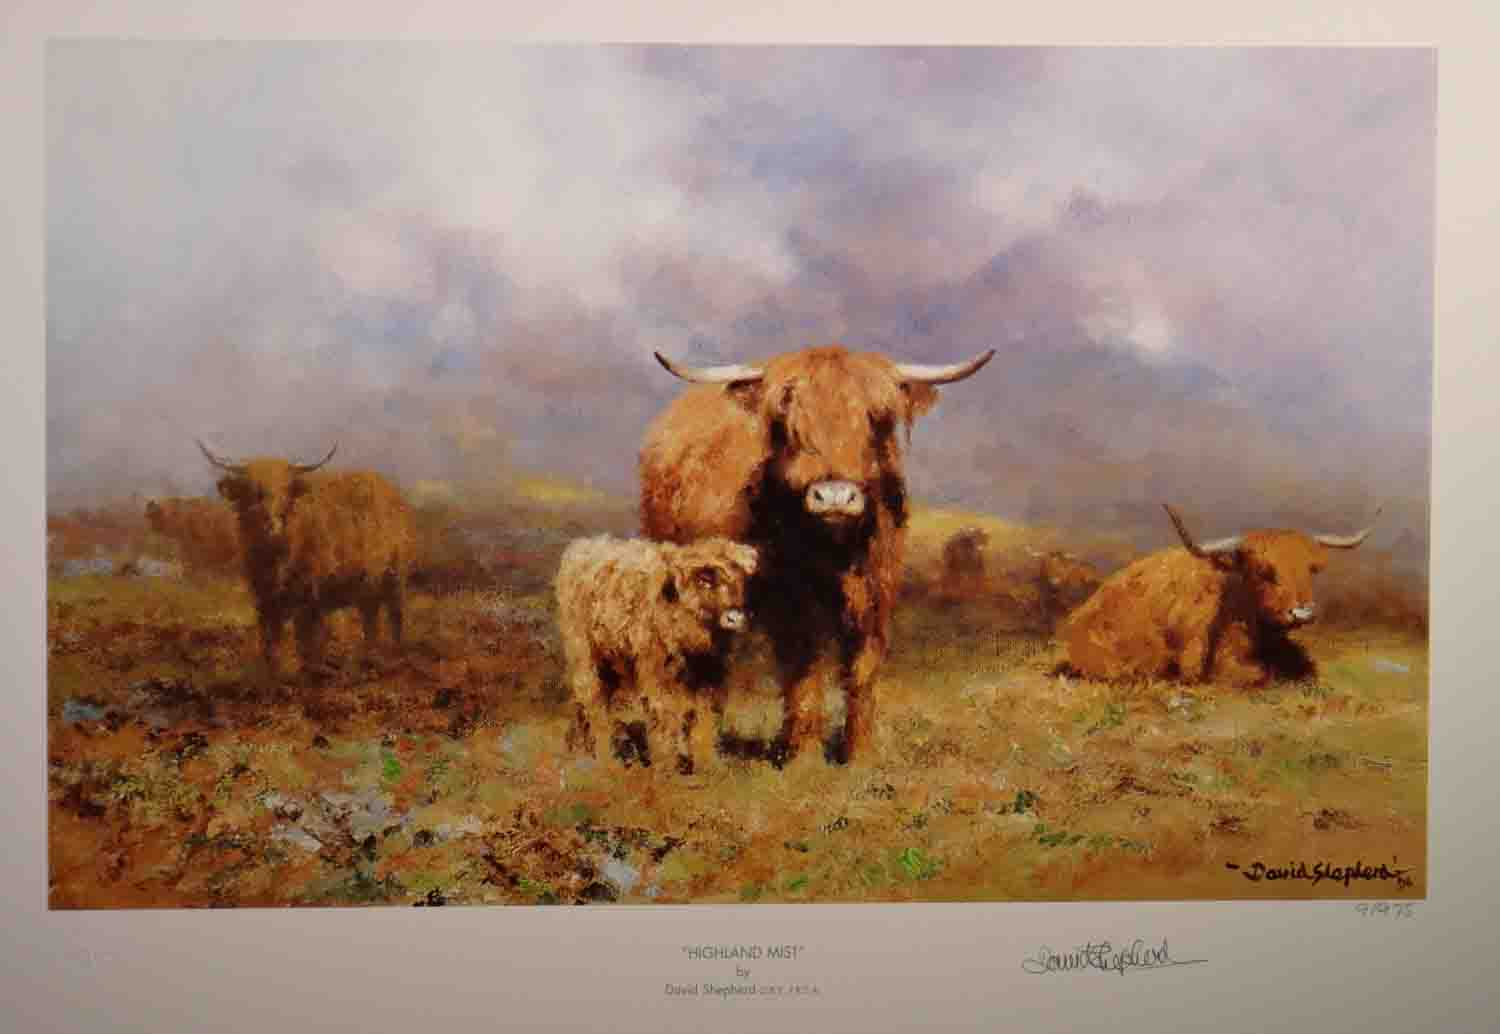 david shepherd, Highland mist, print